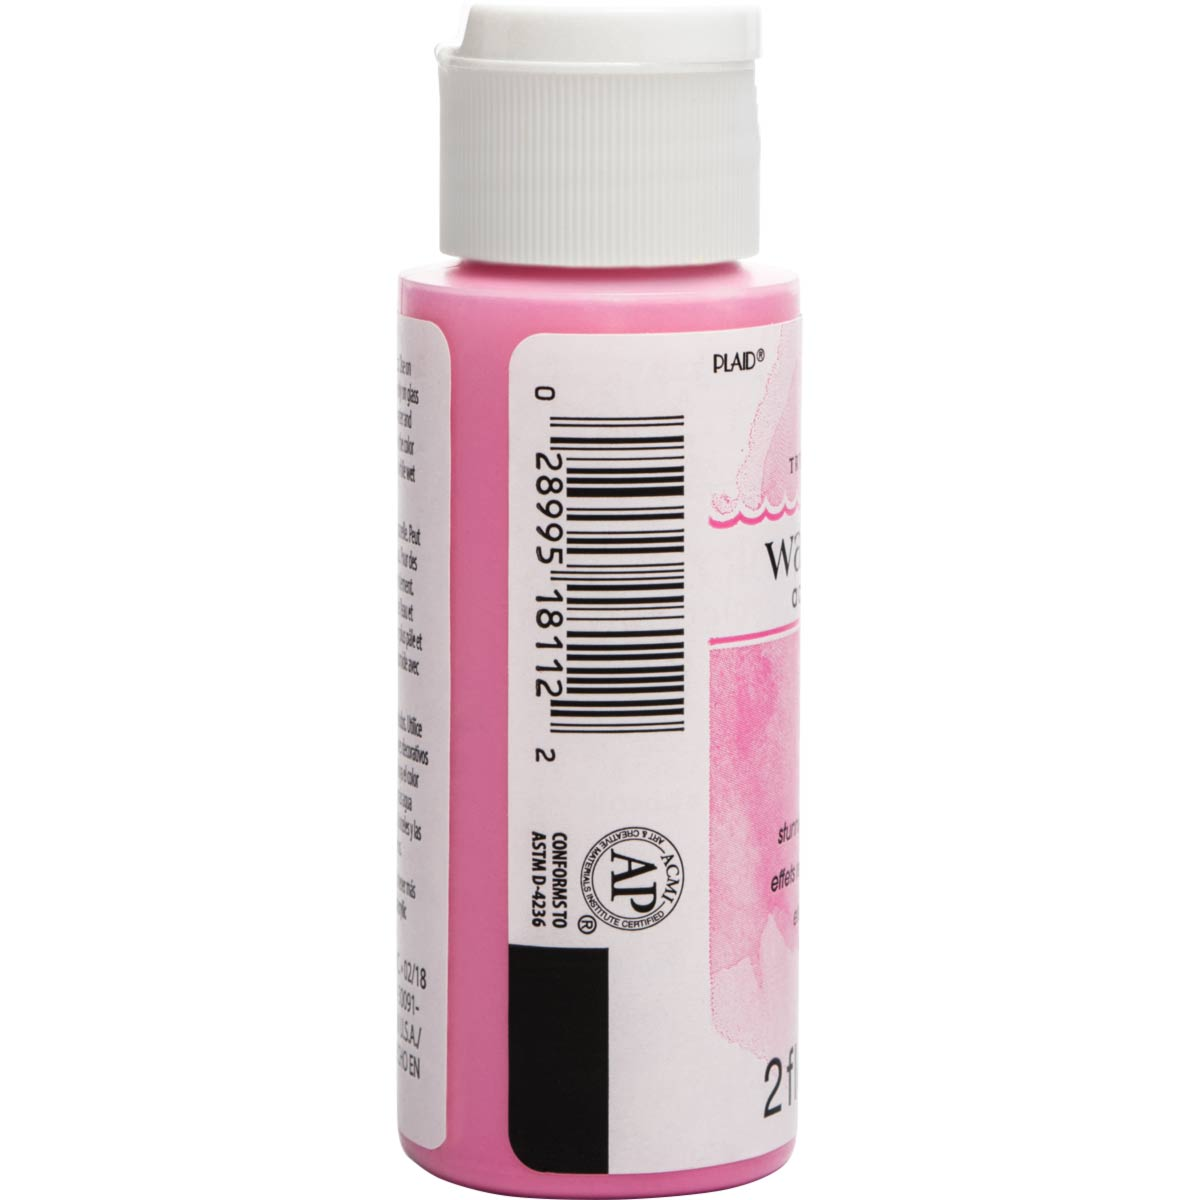 FolkArt ® Watercolor Acrylic Paint™ - Pink, 2 oz. - 18112